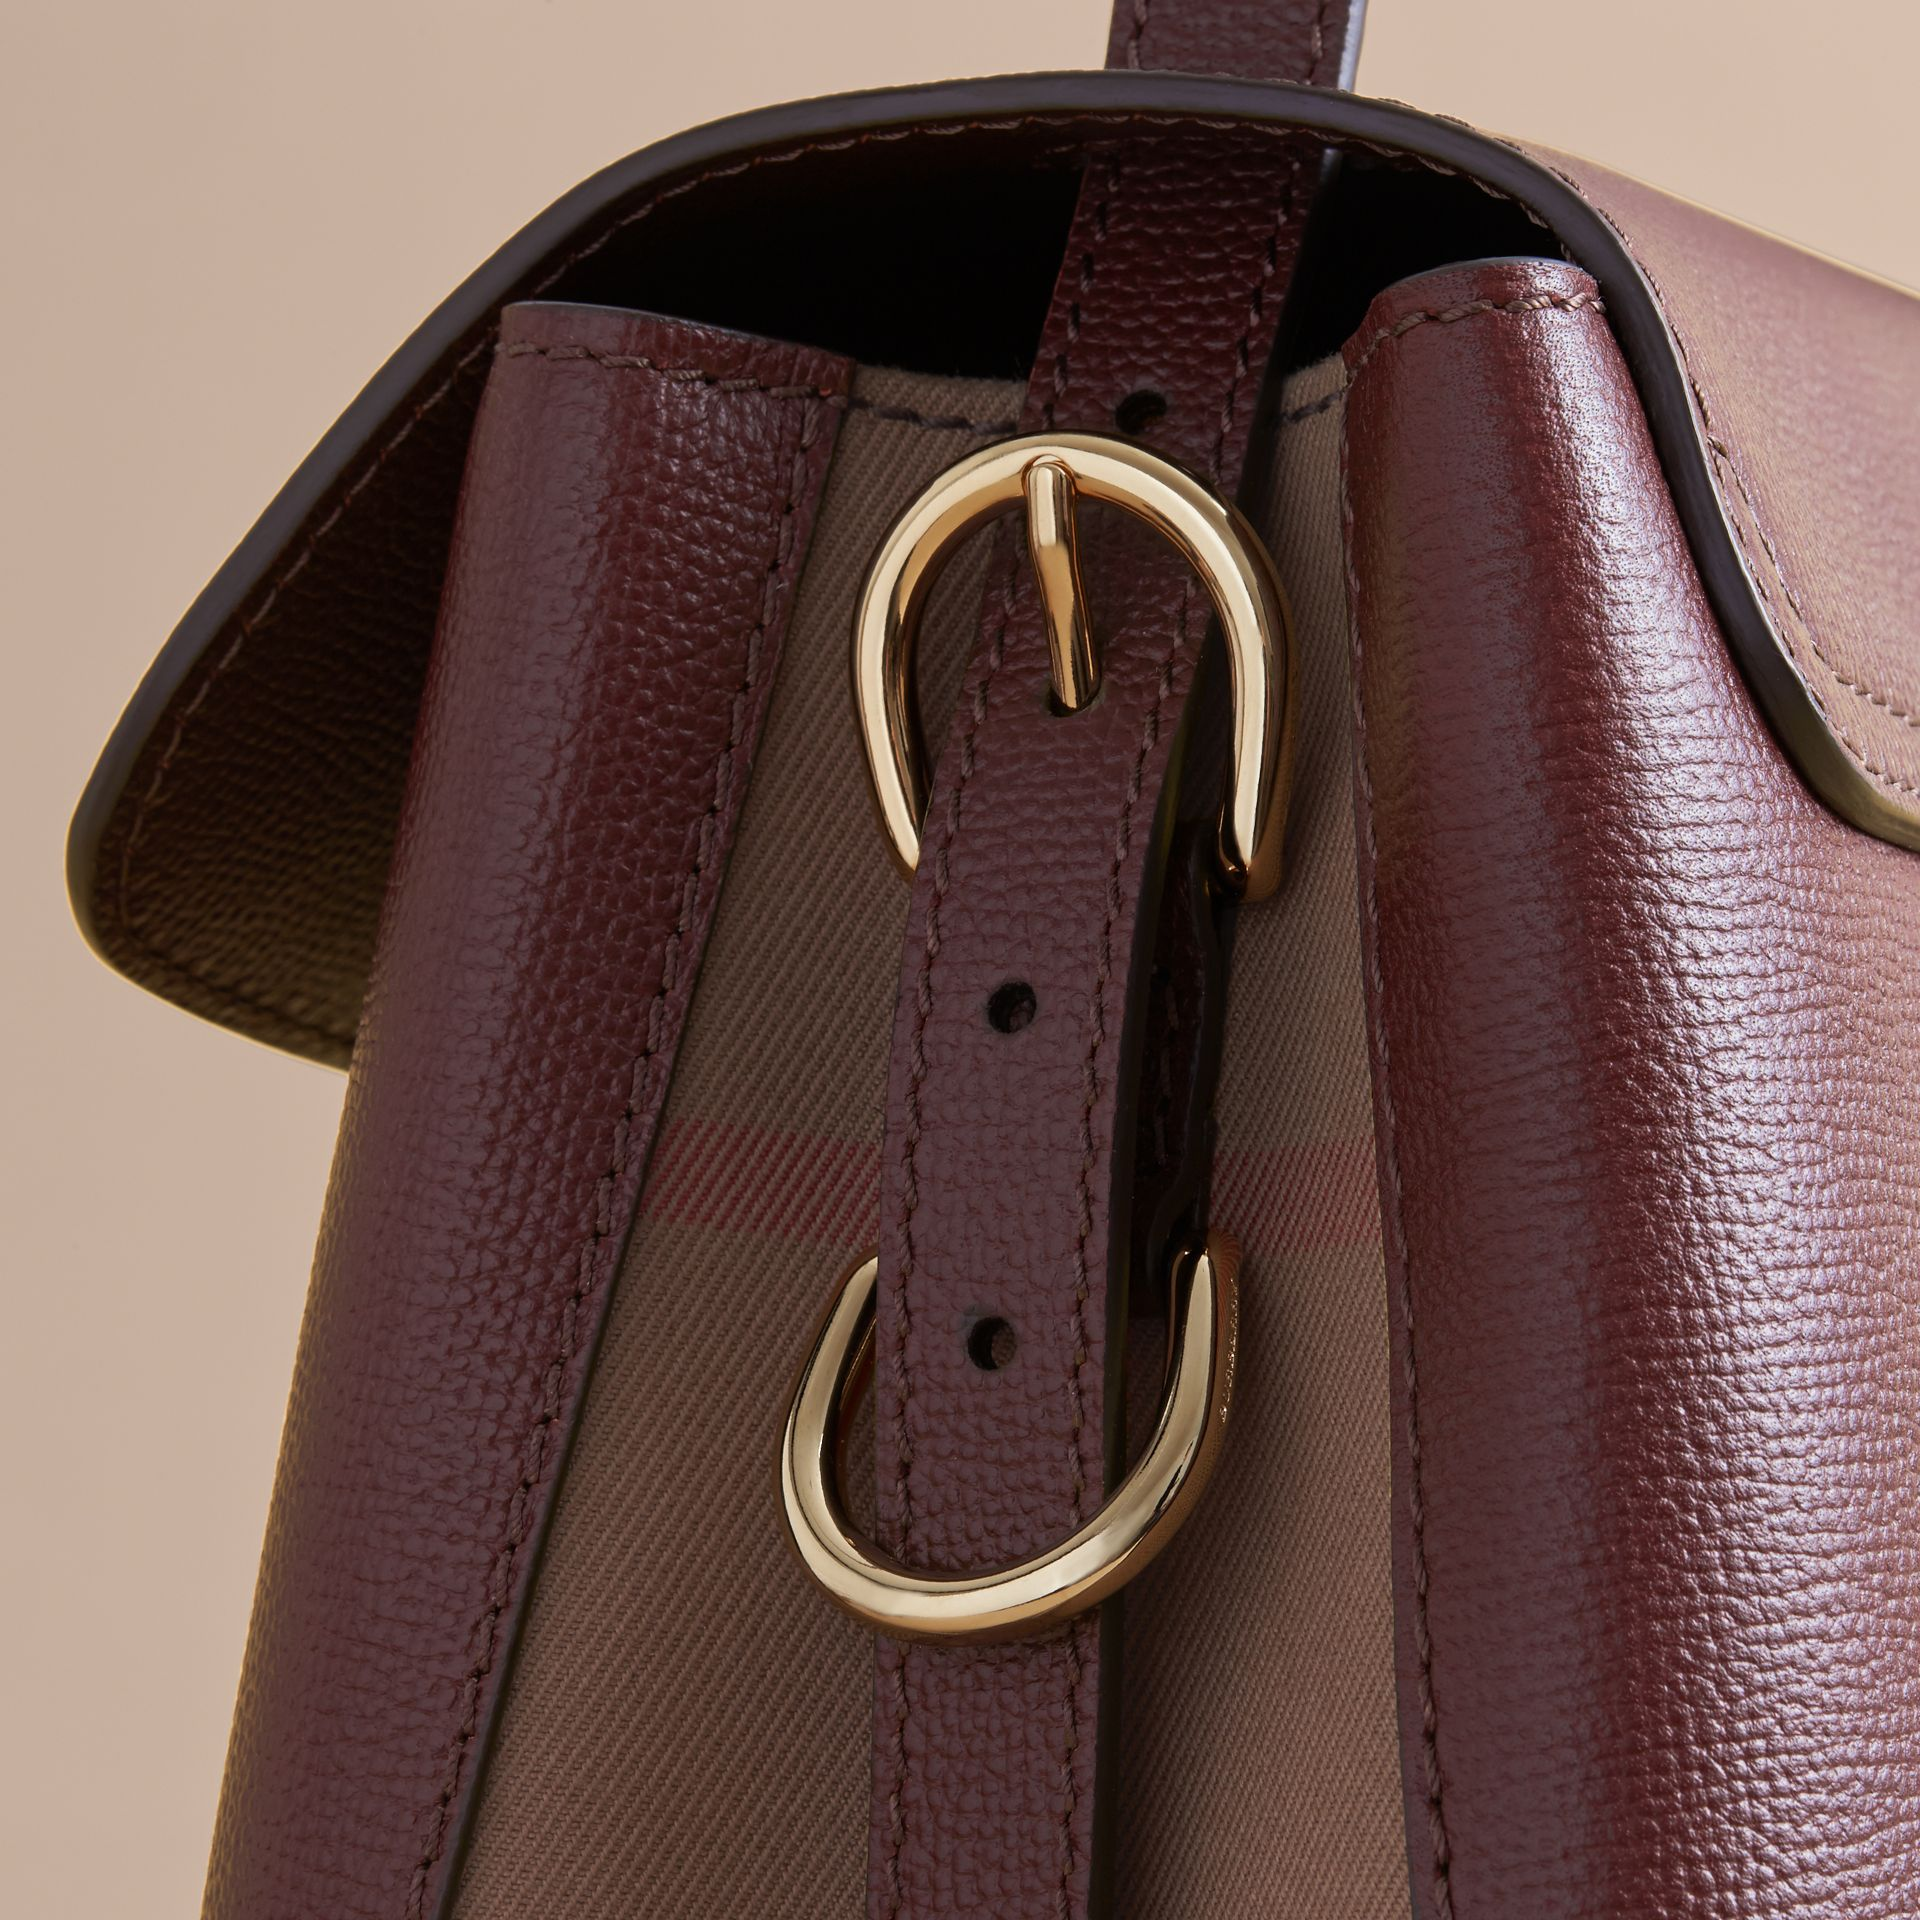 Medium Grainy Leather and House Check Tote Bag in Mahogany Red - Women | Burberry United Kingdom - gallery image 7